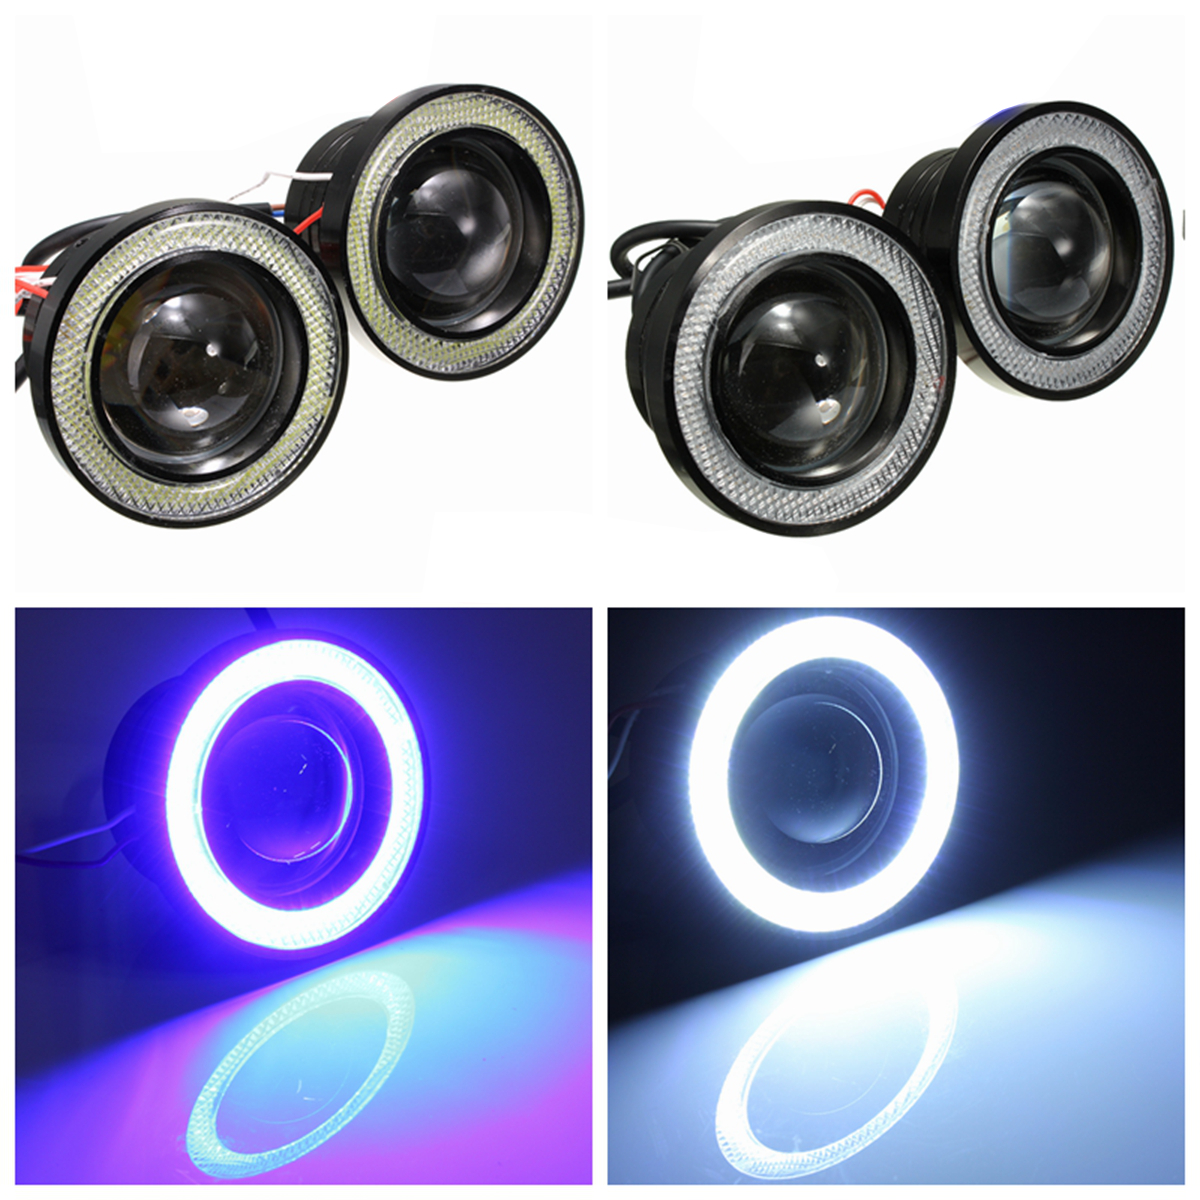 2PCS 3 Inch Projector LED Fog Lights Angel Eyes with Blue/White Halo Ring DRL Lamp 12V for Car Motorcycle